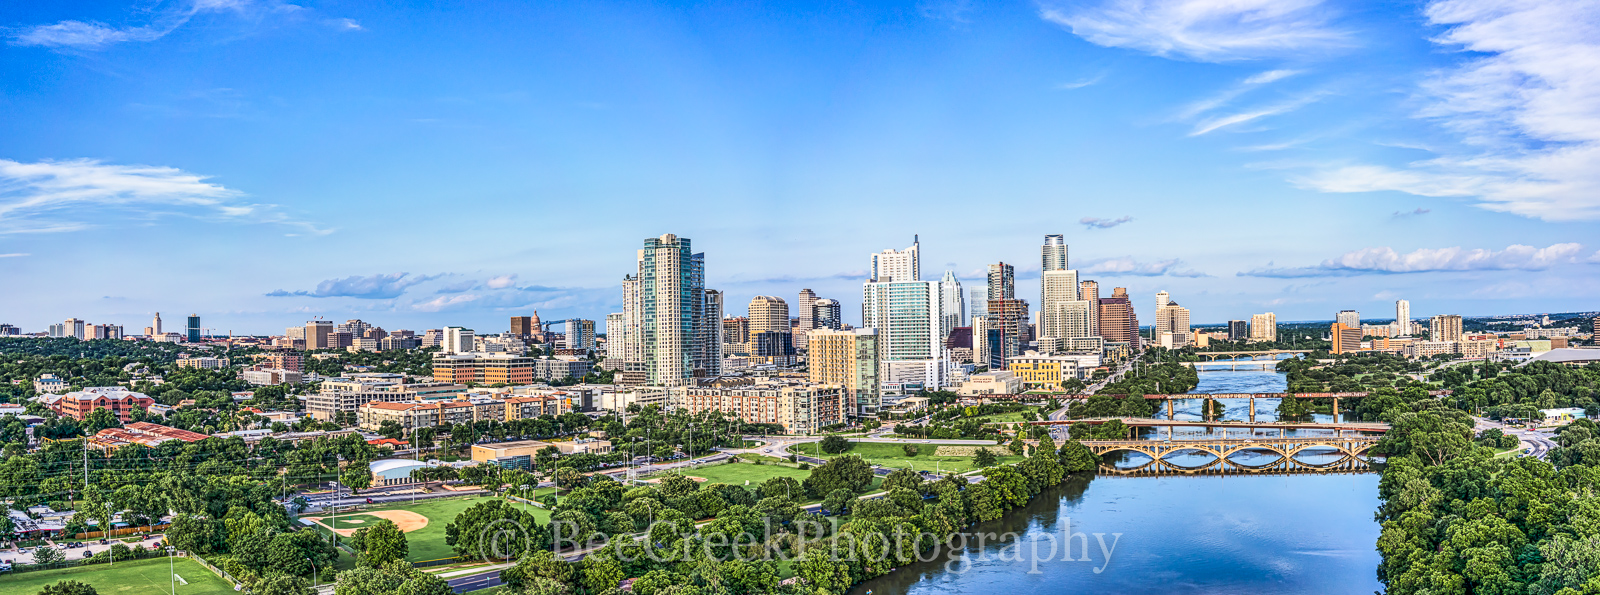 Austin, aerial, austin skylines, austin cityscapes, skylines, cityscape, cityscapes, city, downtown, high rise, cities, buildings, river, Lady Bird Lake, bridges, Lamar Bridge, Pfluger Bridge, Pedestr